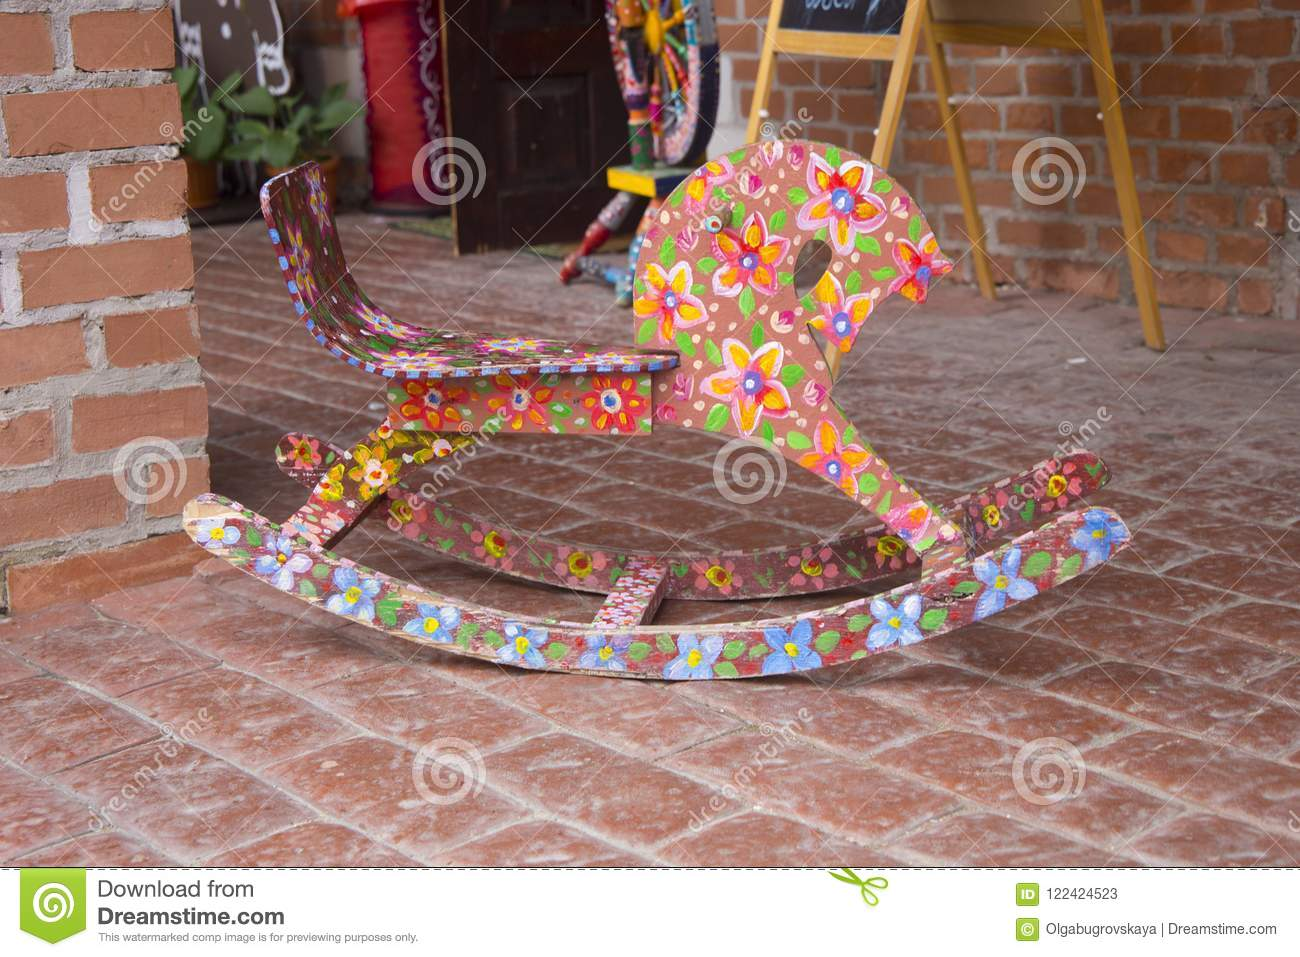 Painted Rocking Horse Toy Background Space For Text Stock Image Image Of Background Rows 122424523